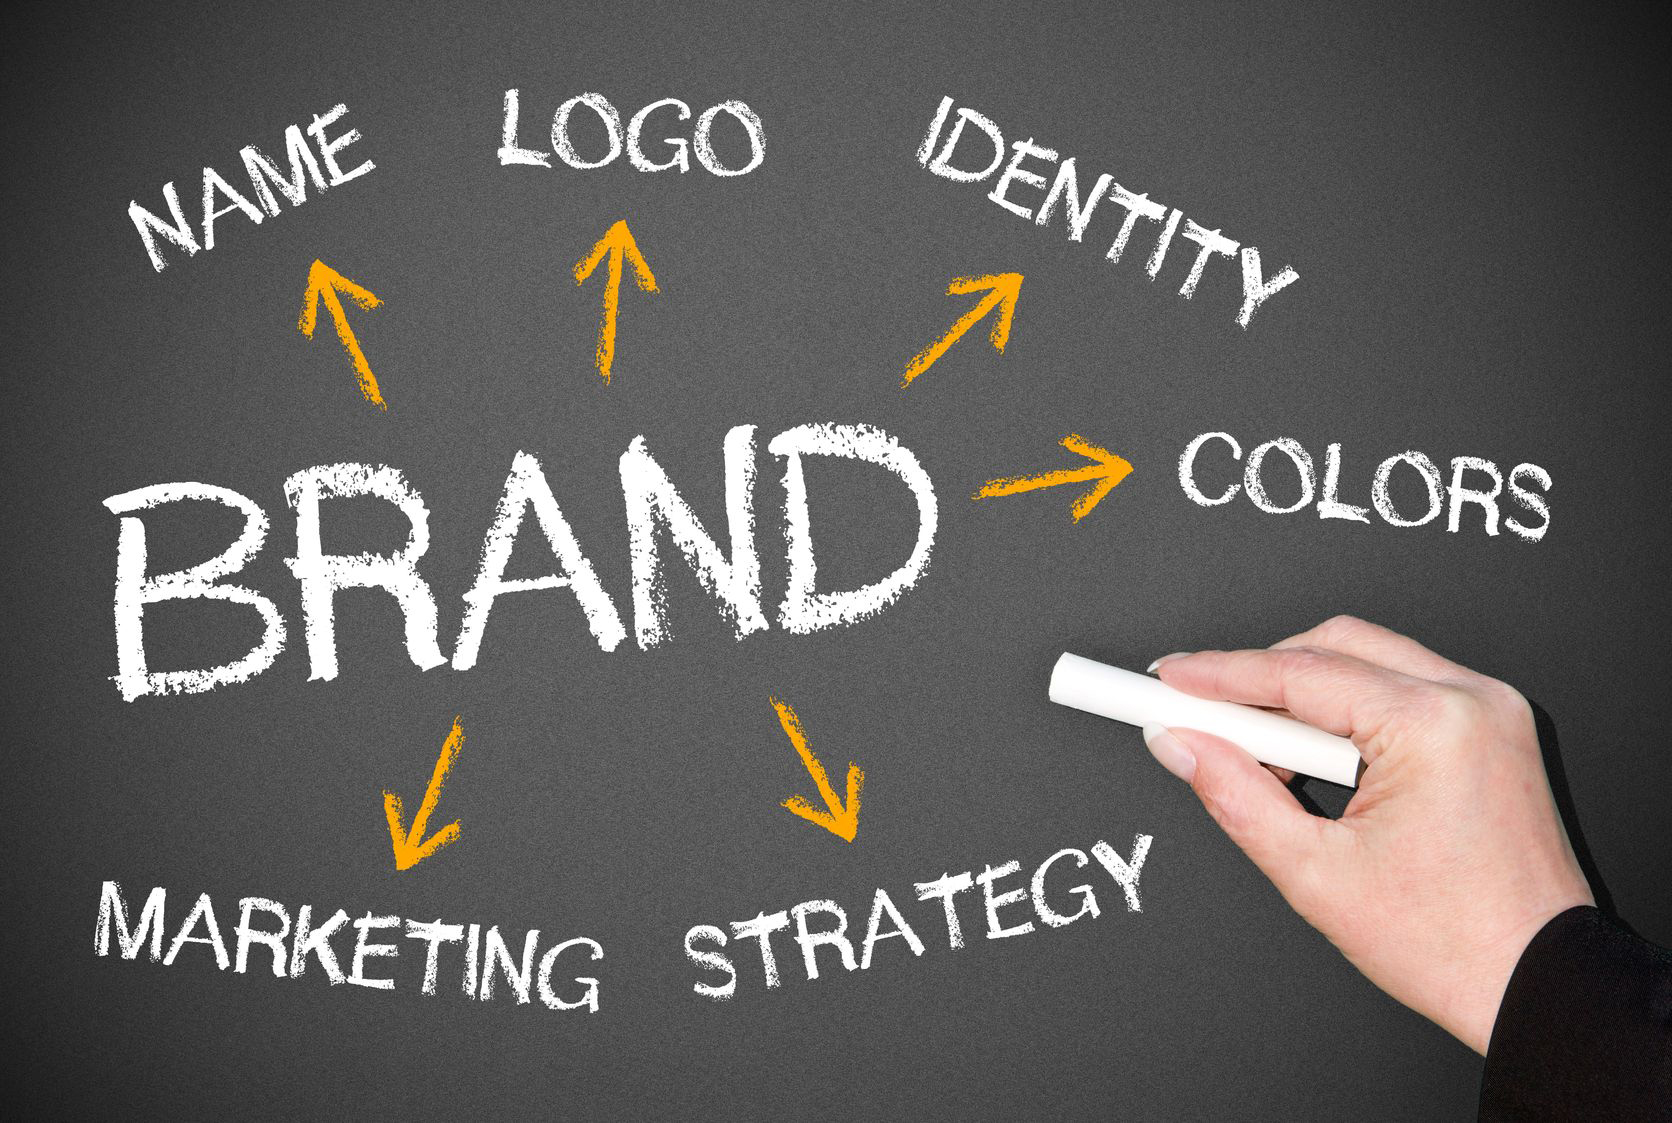 The 4 Keys to Successful Branding